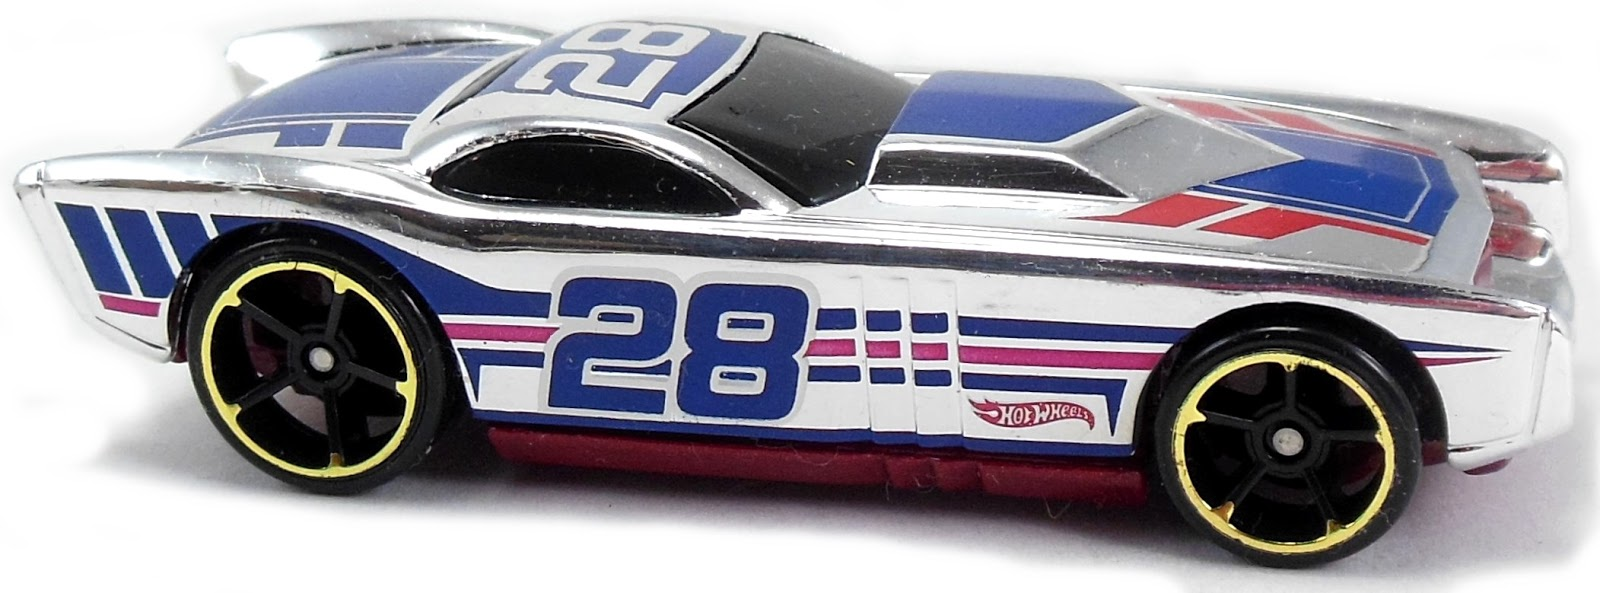 cbae32825efb Hot Wheels Karawang Winner car